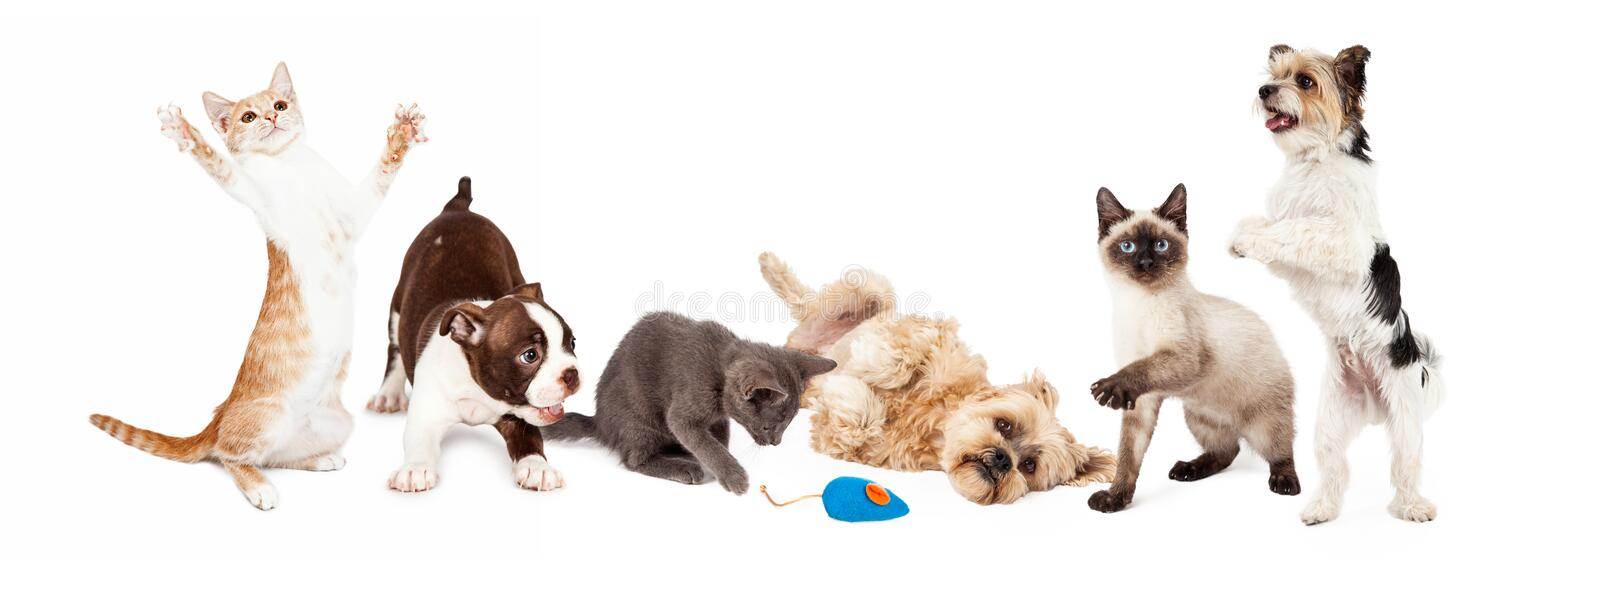 Group of Playful Cats and Dogs. A large group of young cats and dogs playing together. Image sized to fit a common social media banner royalty free stock image